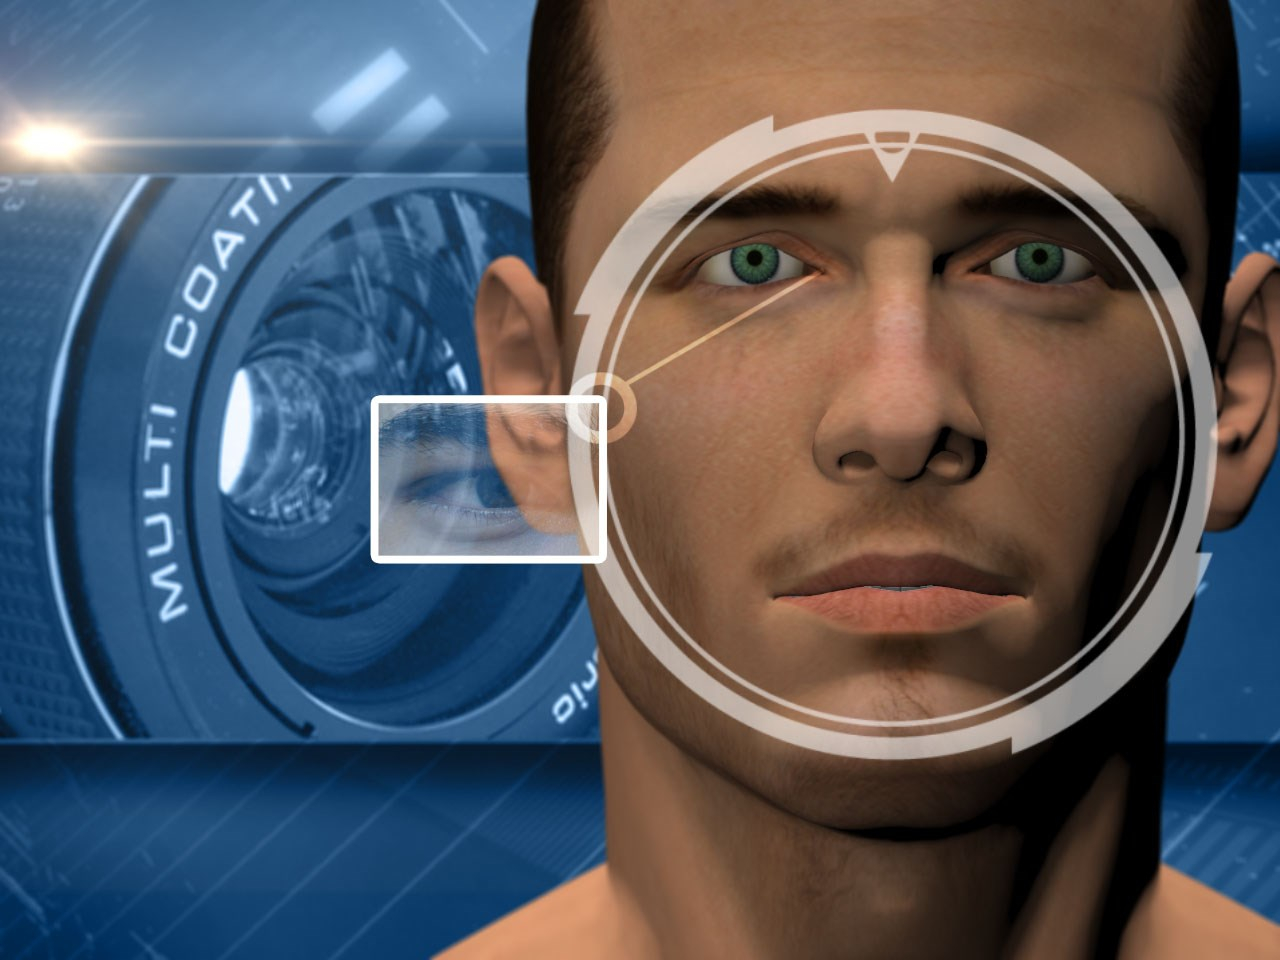 San Francisco May Ban the Use of Facial Recognition